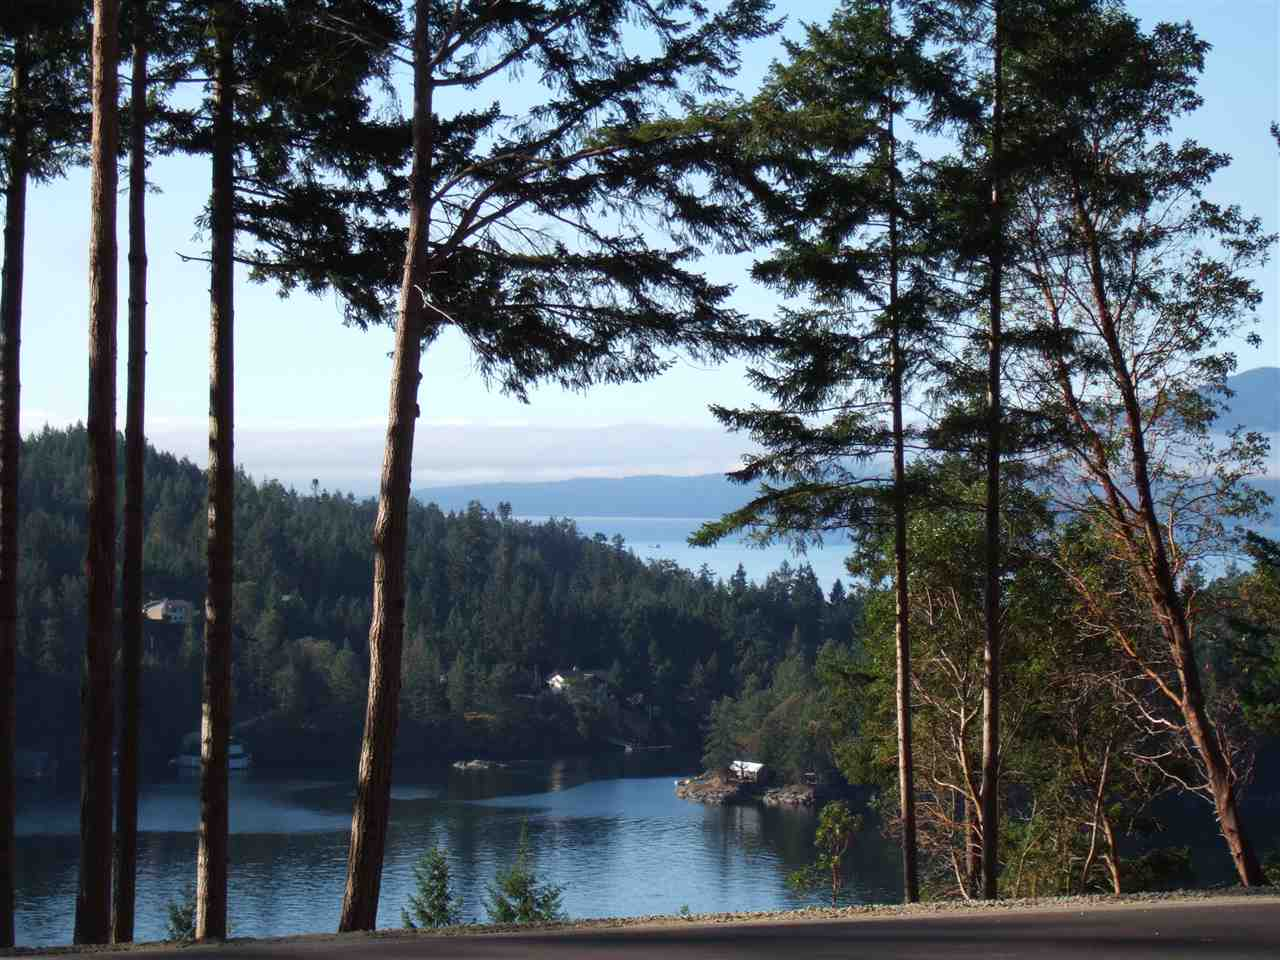 Oceanfront Property in Exclusive Pender Harbour Landing Development Freehold, non-strata 1.48 acre Estate Lot boasts awesome Harbour & Strait views w/South Exposure & is fully serviced underground.